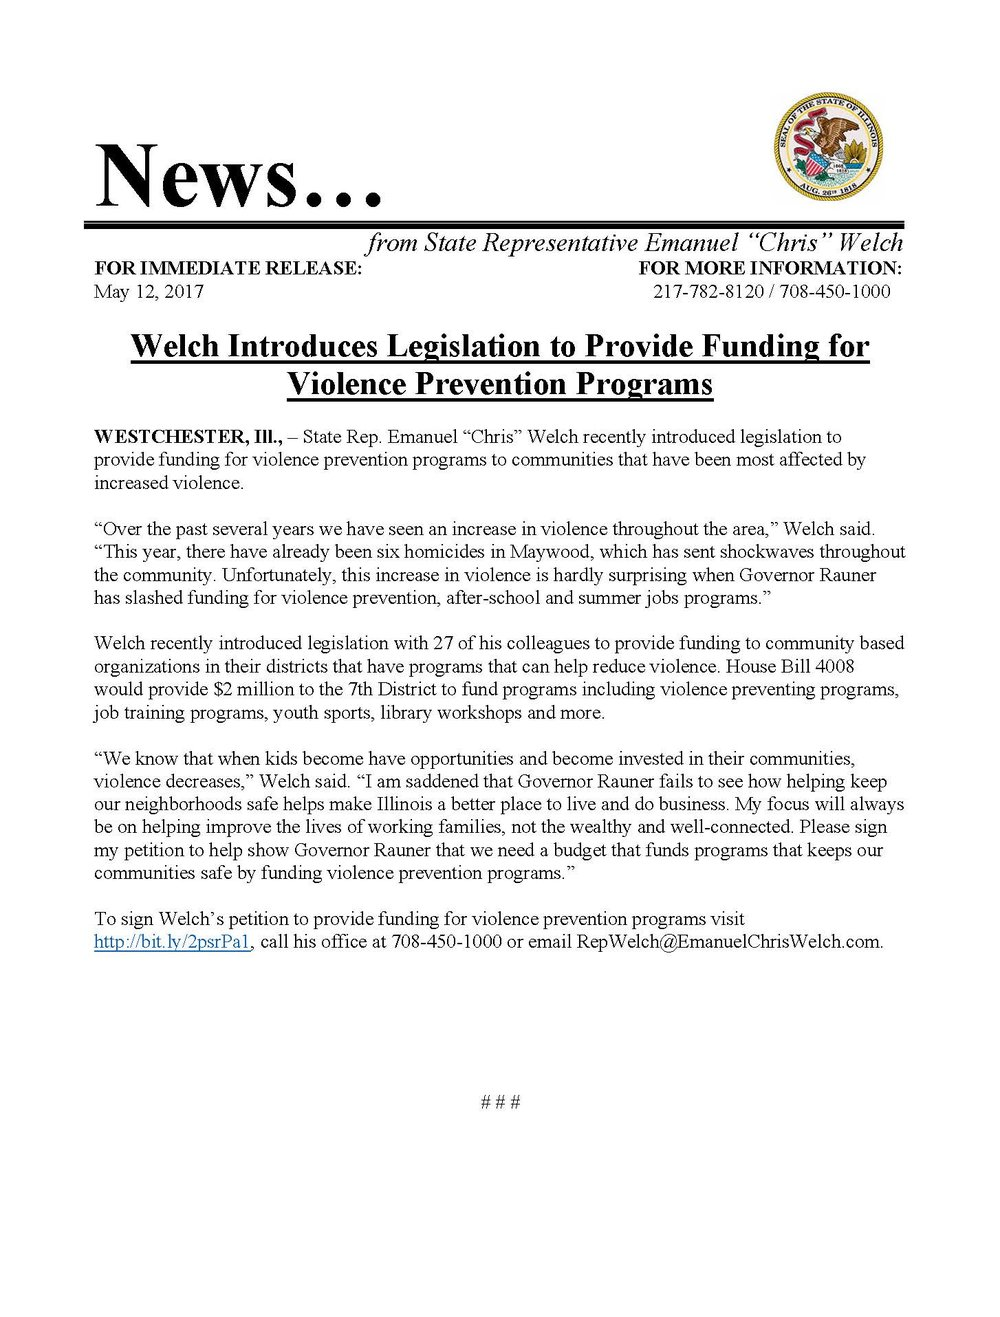 Welch Introduces Legislation to Provide Funding for Violence Prevention Programs  (May 12, 2017)